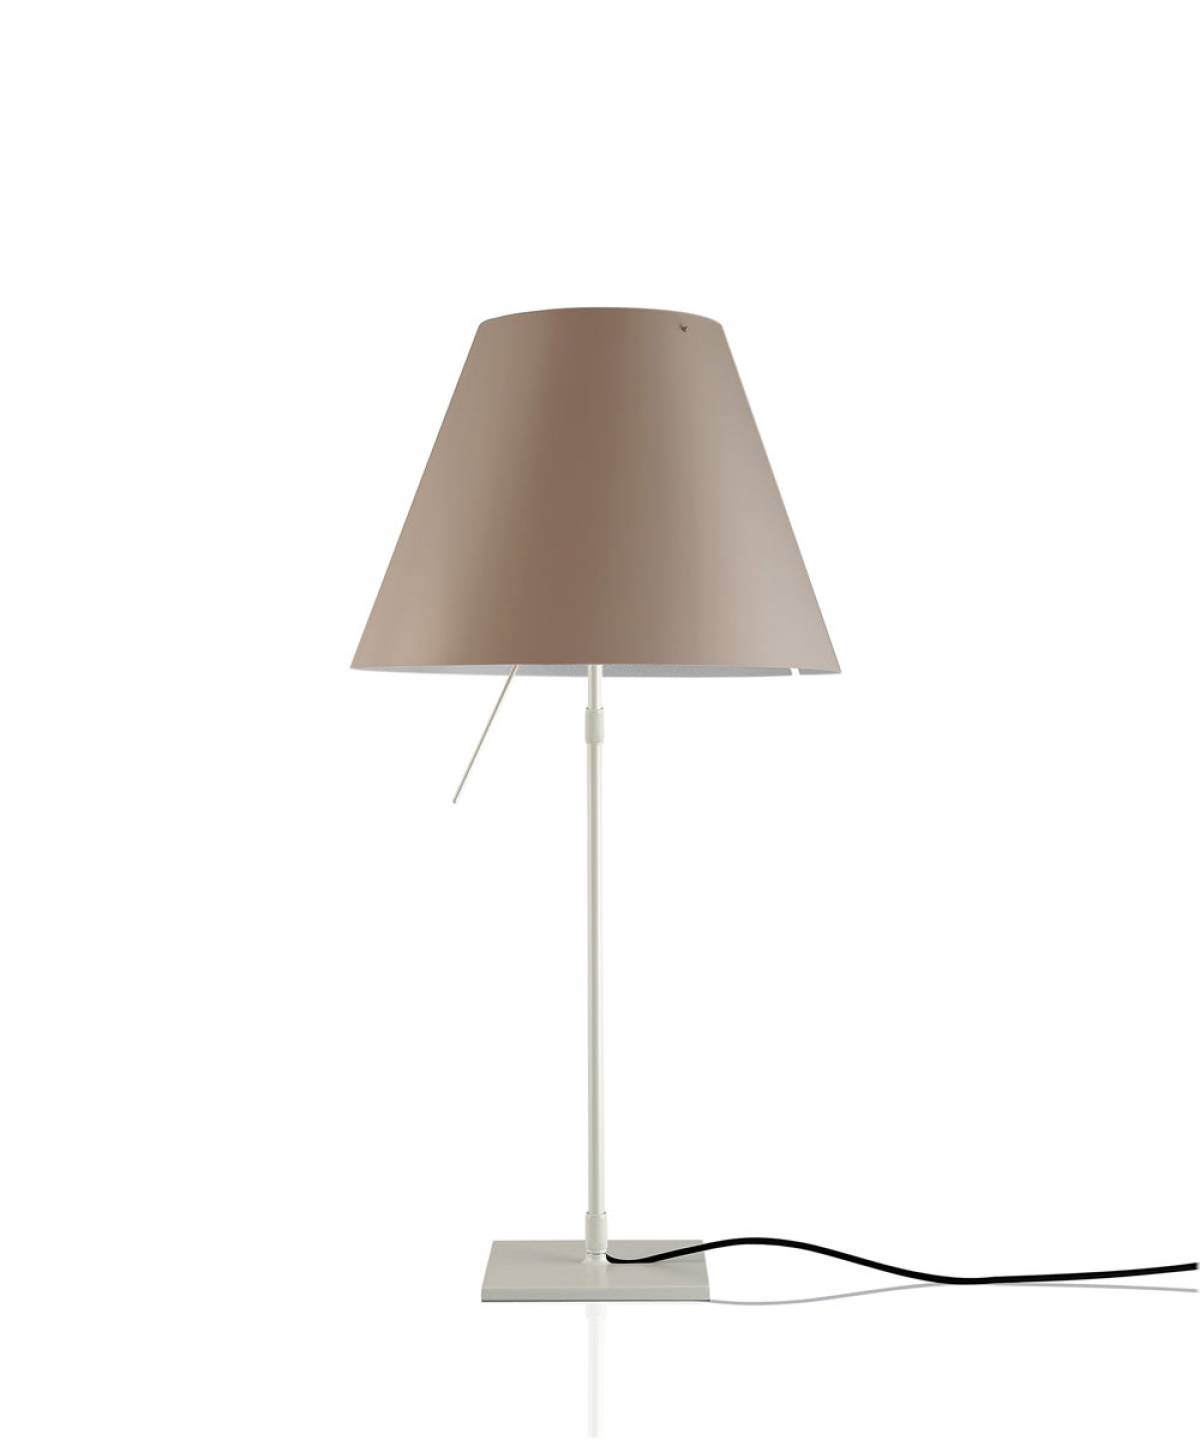 4 Costanza table lamp Luceplan